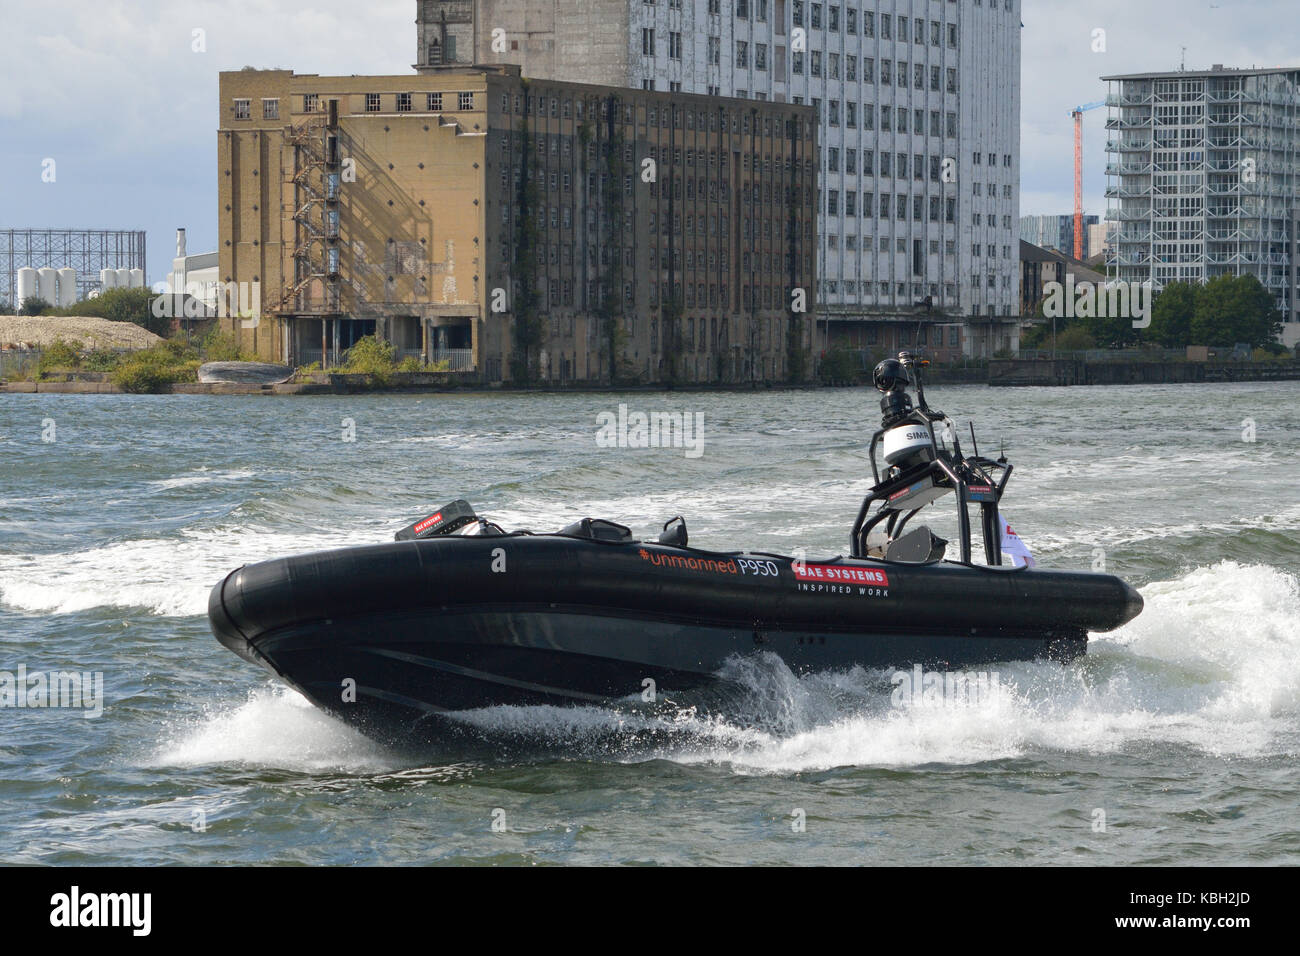 BAE Systems unmanned Pacific 950 RHIB being demonstrated at DSEi 2017 Stock Photo